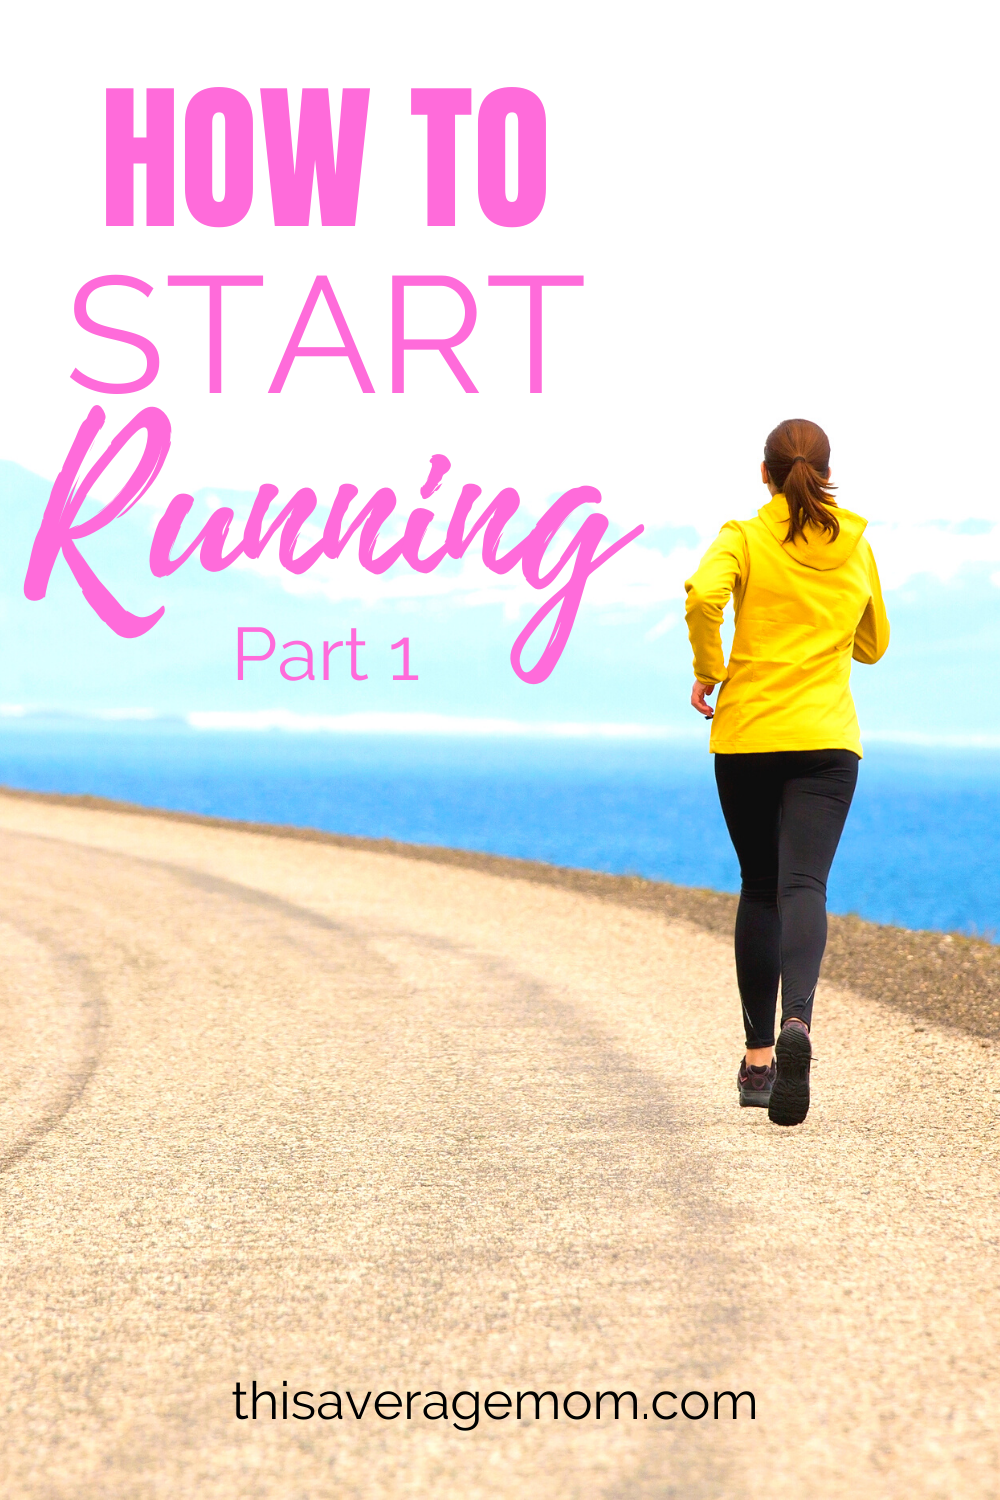 I get a lot of questions about how to start running, so I thought it was time to share what I've learned over the years in a blog post or two! Whether you want to run for fun and stress-relief or you want to eventually conquer a half-marathon, I can point you in the right direction.